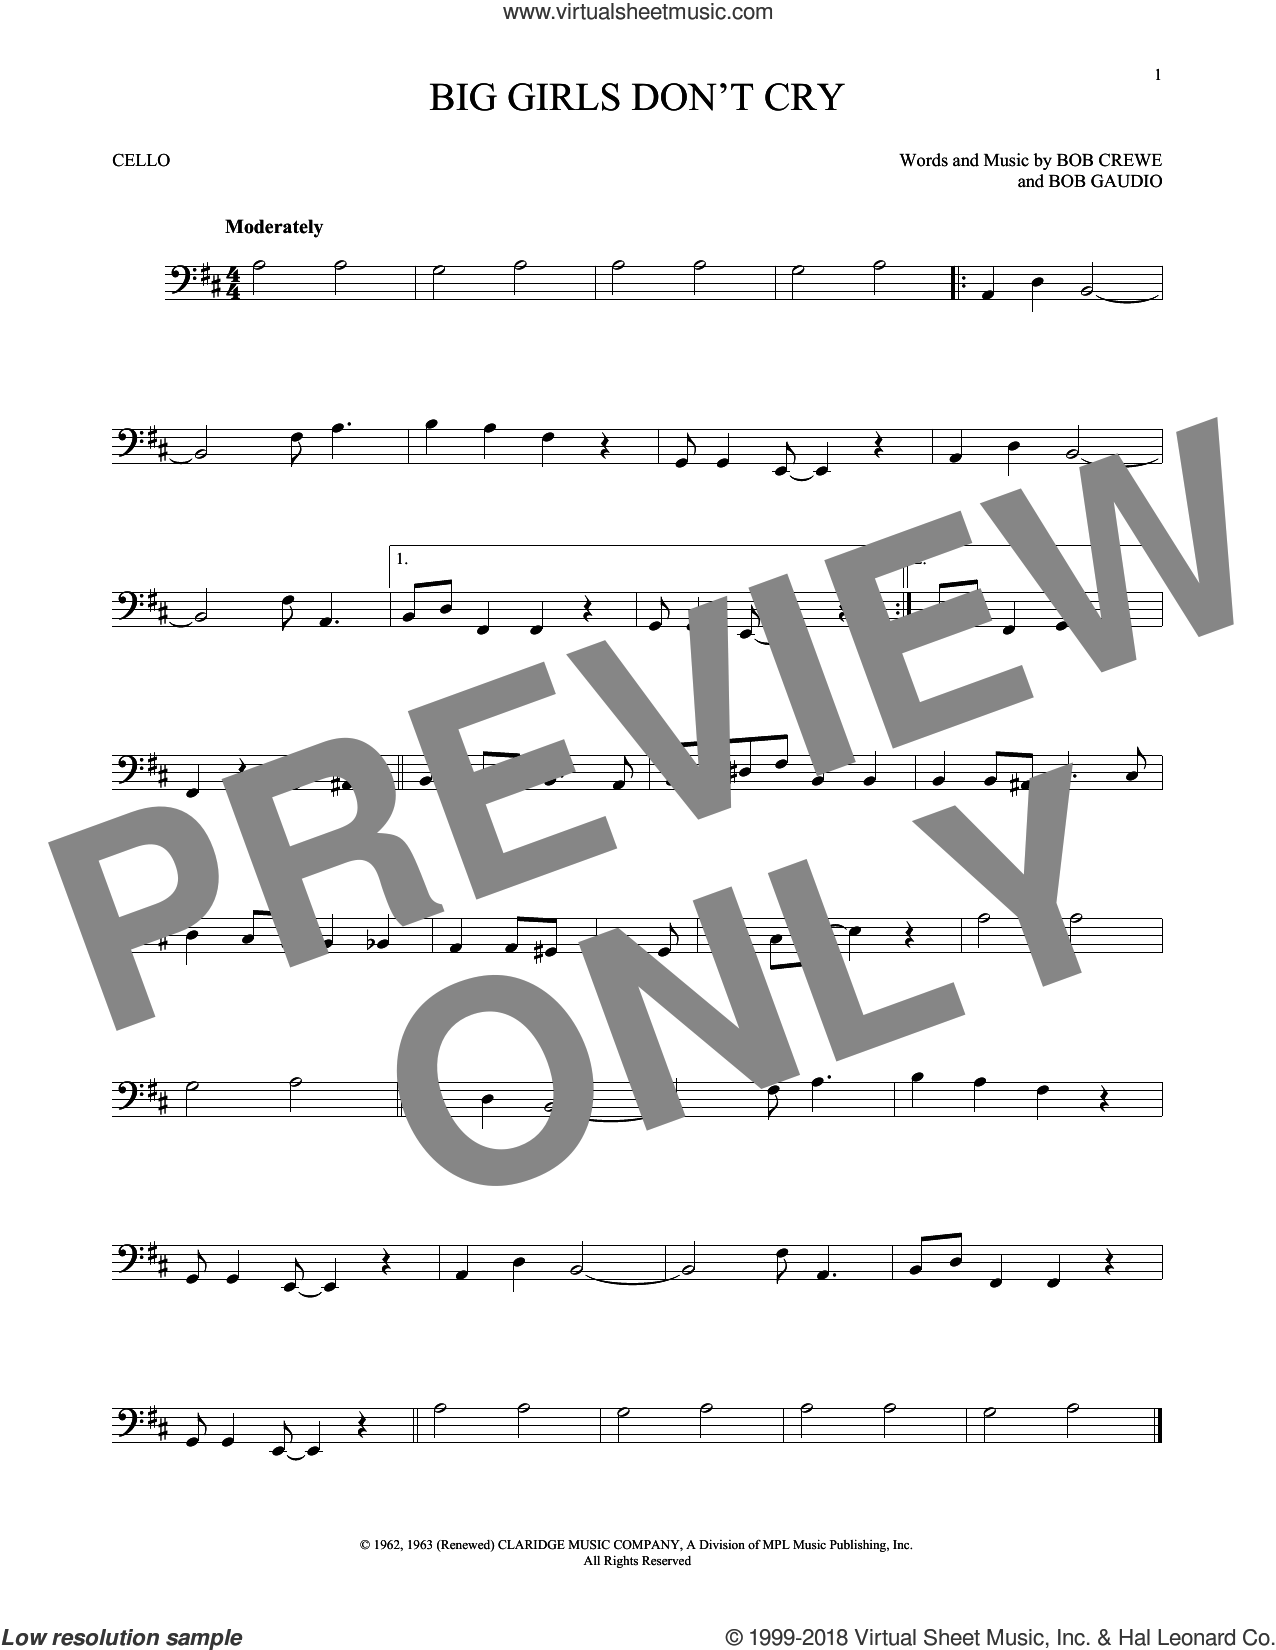 Big Girls Don't Cry sheet music for cello solo by The Four Seasons, Bob Crewe and Bob Gaudio, intermediate skill level